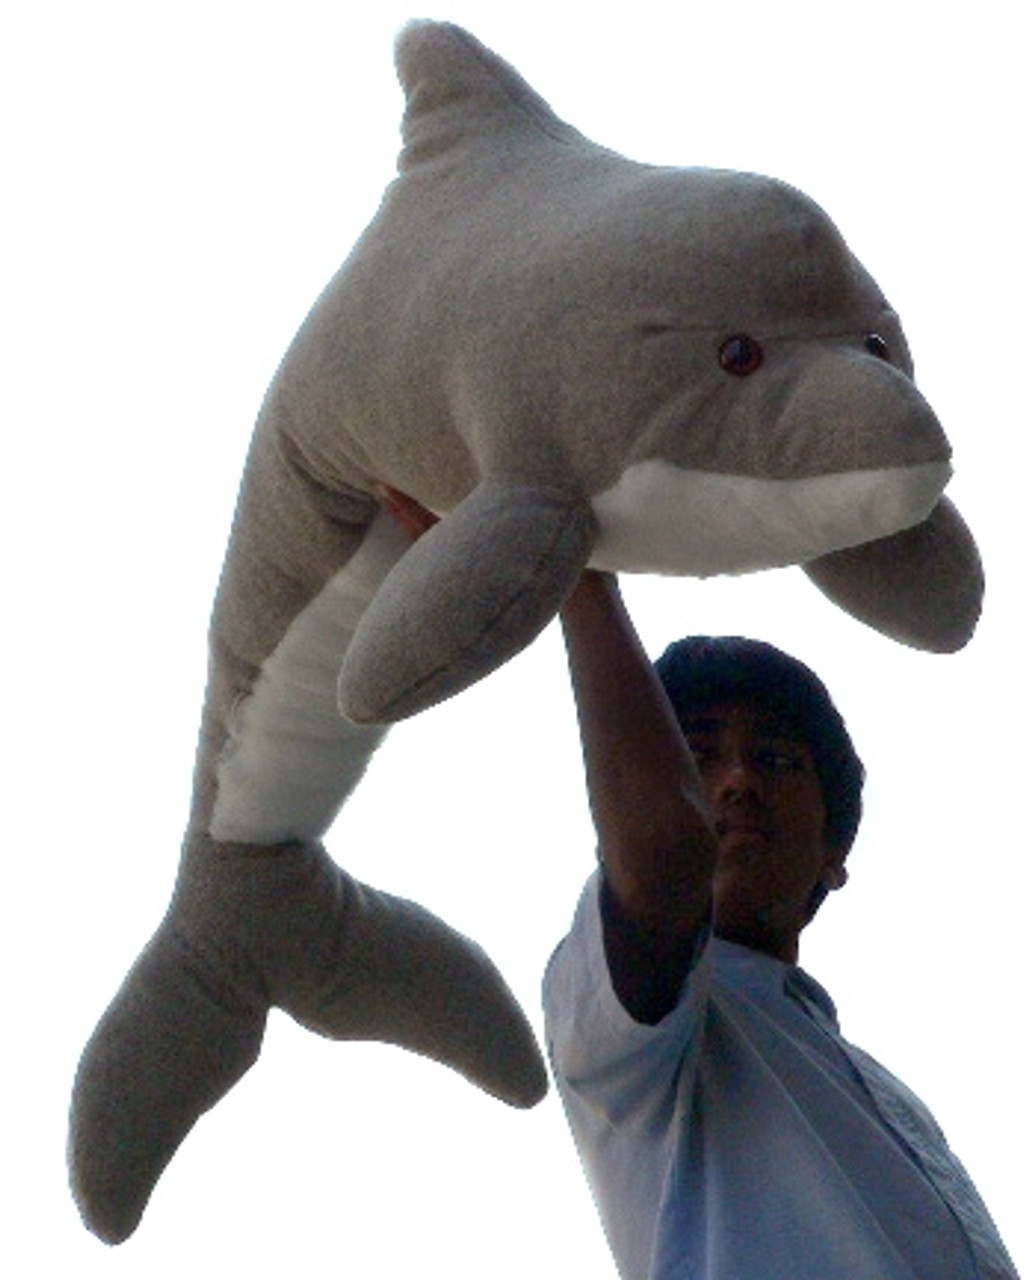 Animals Big Stuffed Fish Big Stuffed Dolphins Big Plush